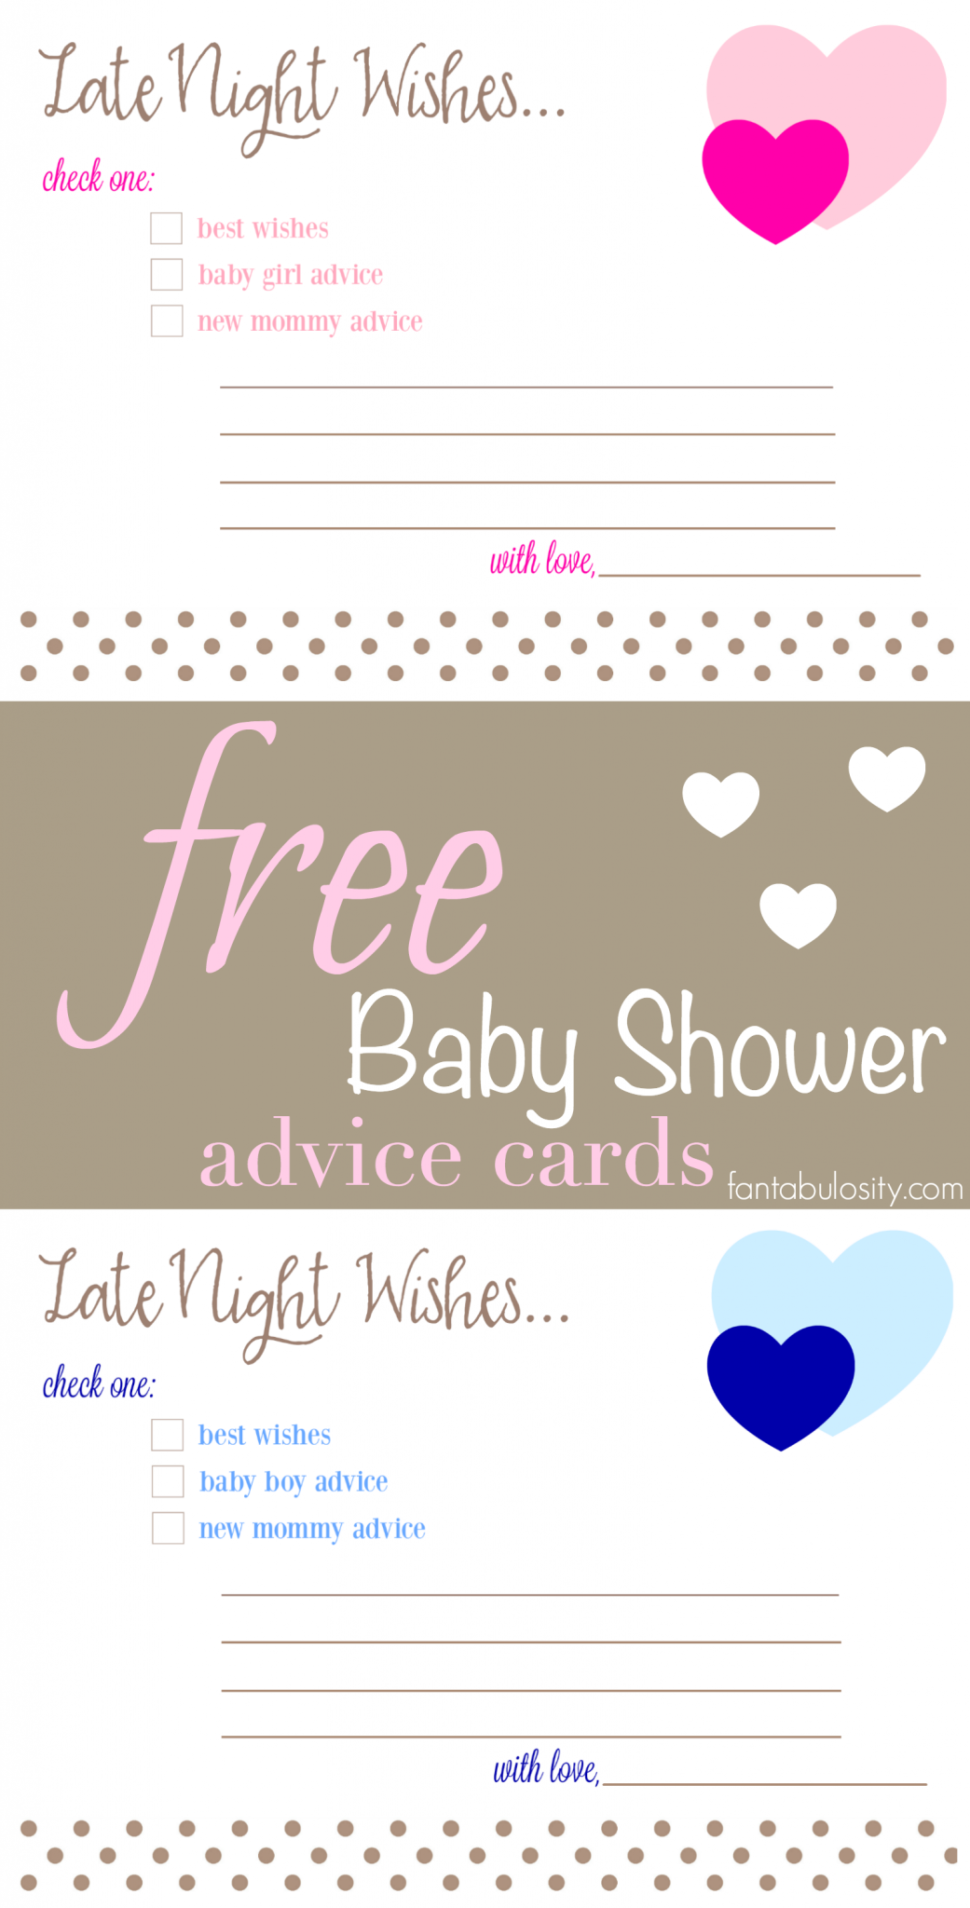 Medium Size of Baby Shower:stylish Baby Shower Wishes Picture Inspirations Baby Shower Wishes As Well As Baby Shower Greeting Cards With Baby Shower Wording Plus Baby Shower Gift Ideas Together With Baby Shower Gift List